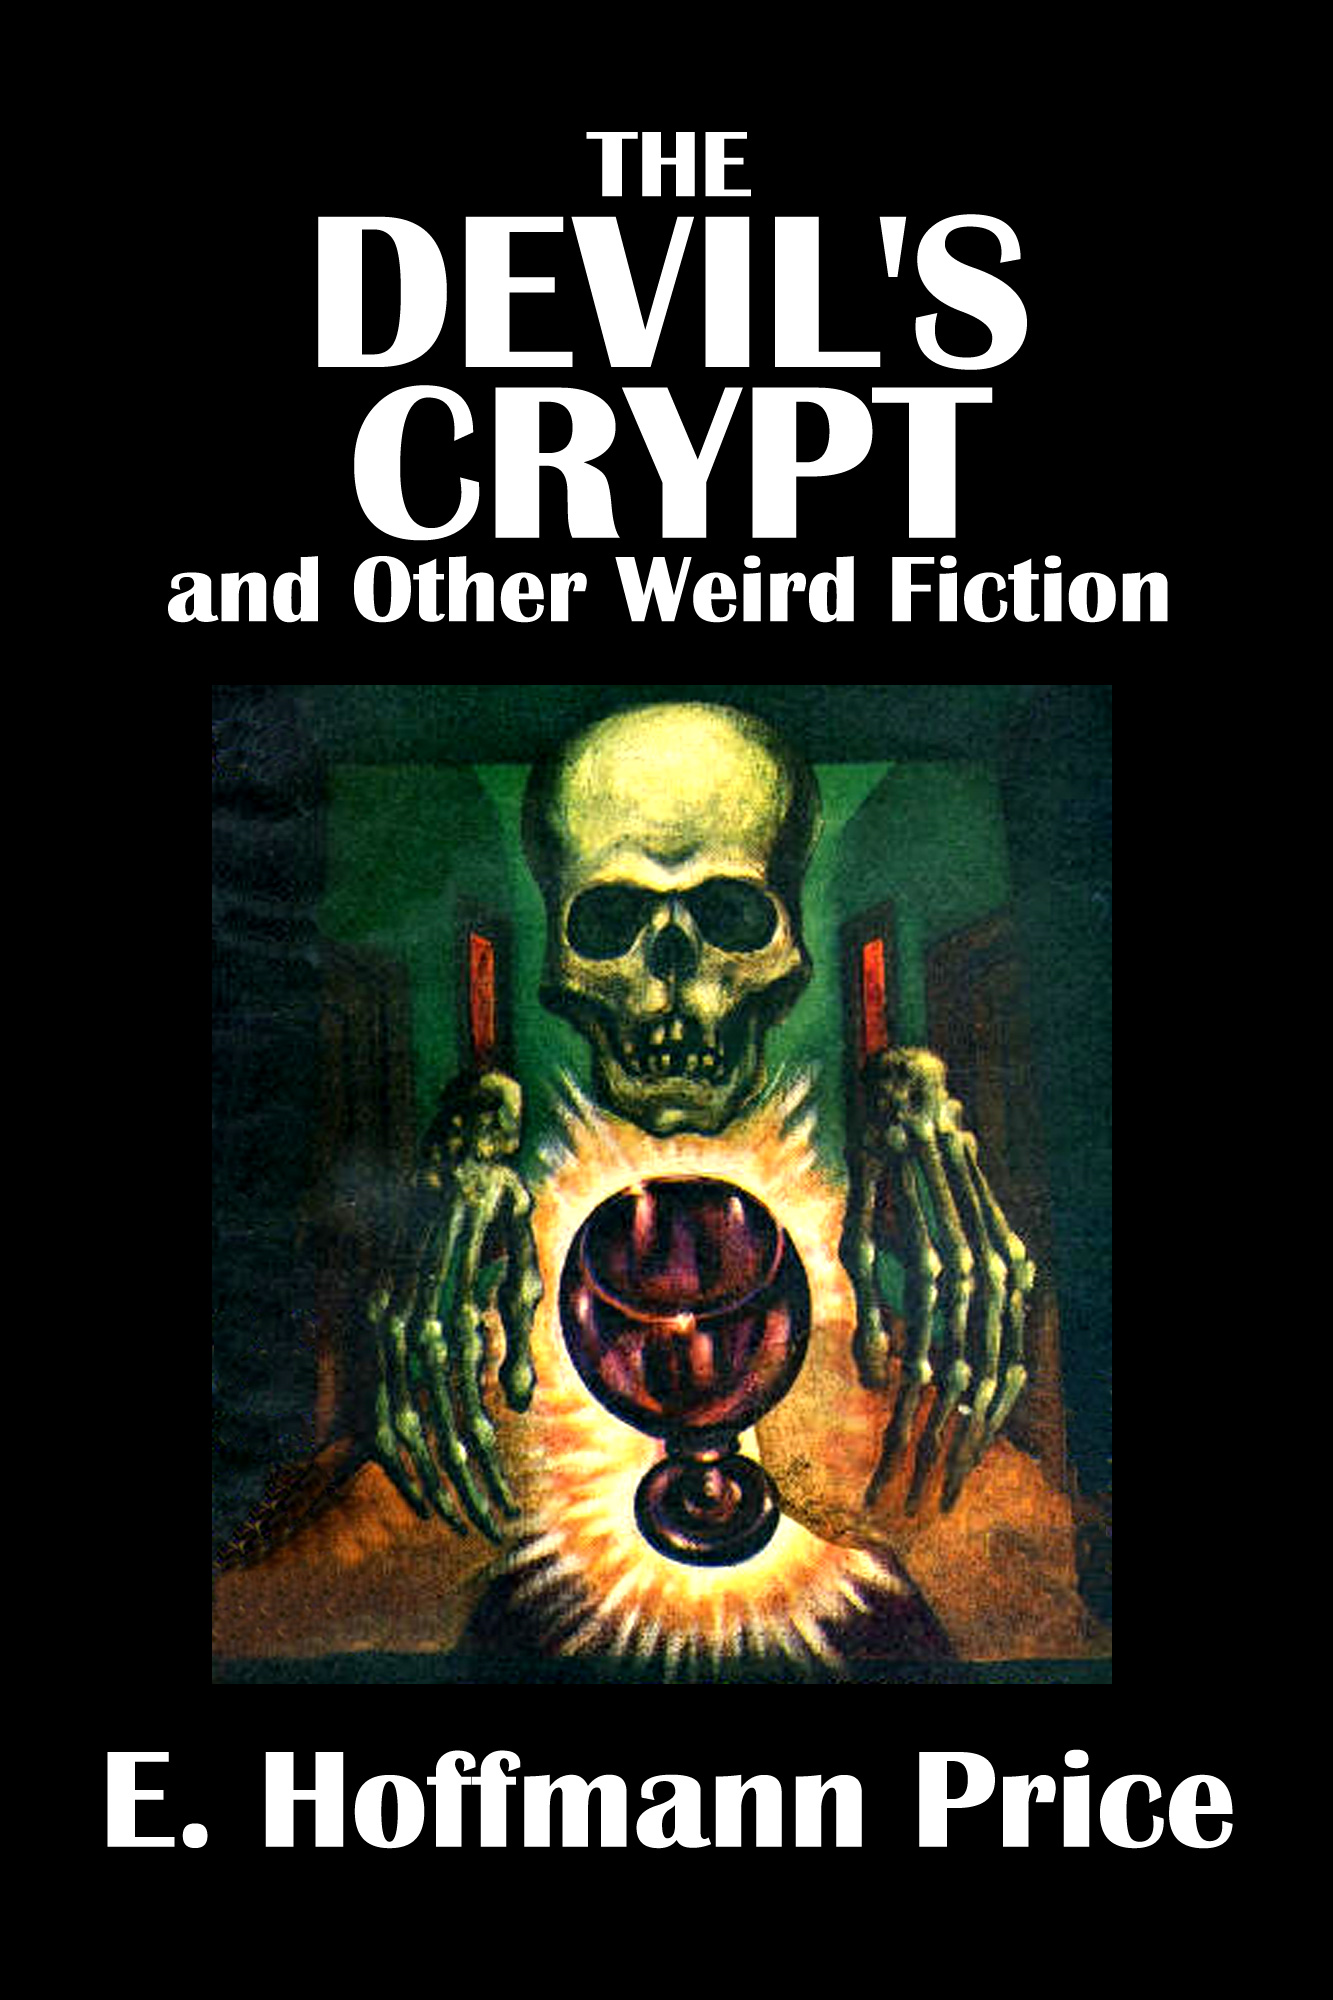 The Devil's Crypt and Other Weird Fiction by E. Hoffmann Price